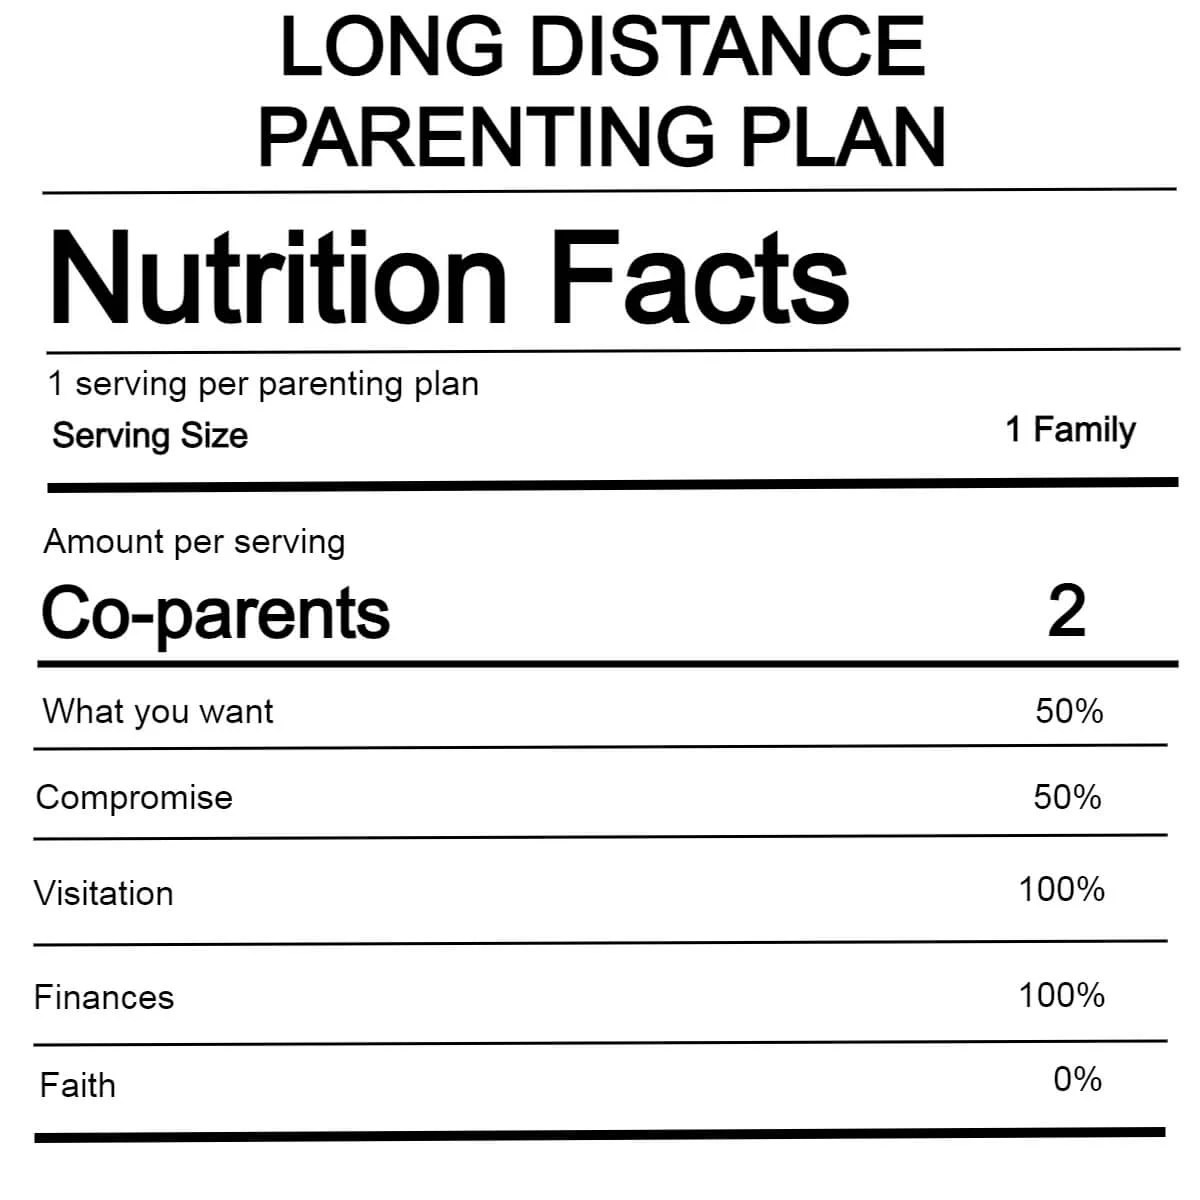 a nutrition facts label for a long distance parenting plan including values for compromise faith, what you want, visitation, and finances